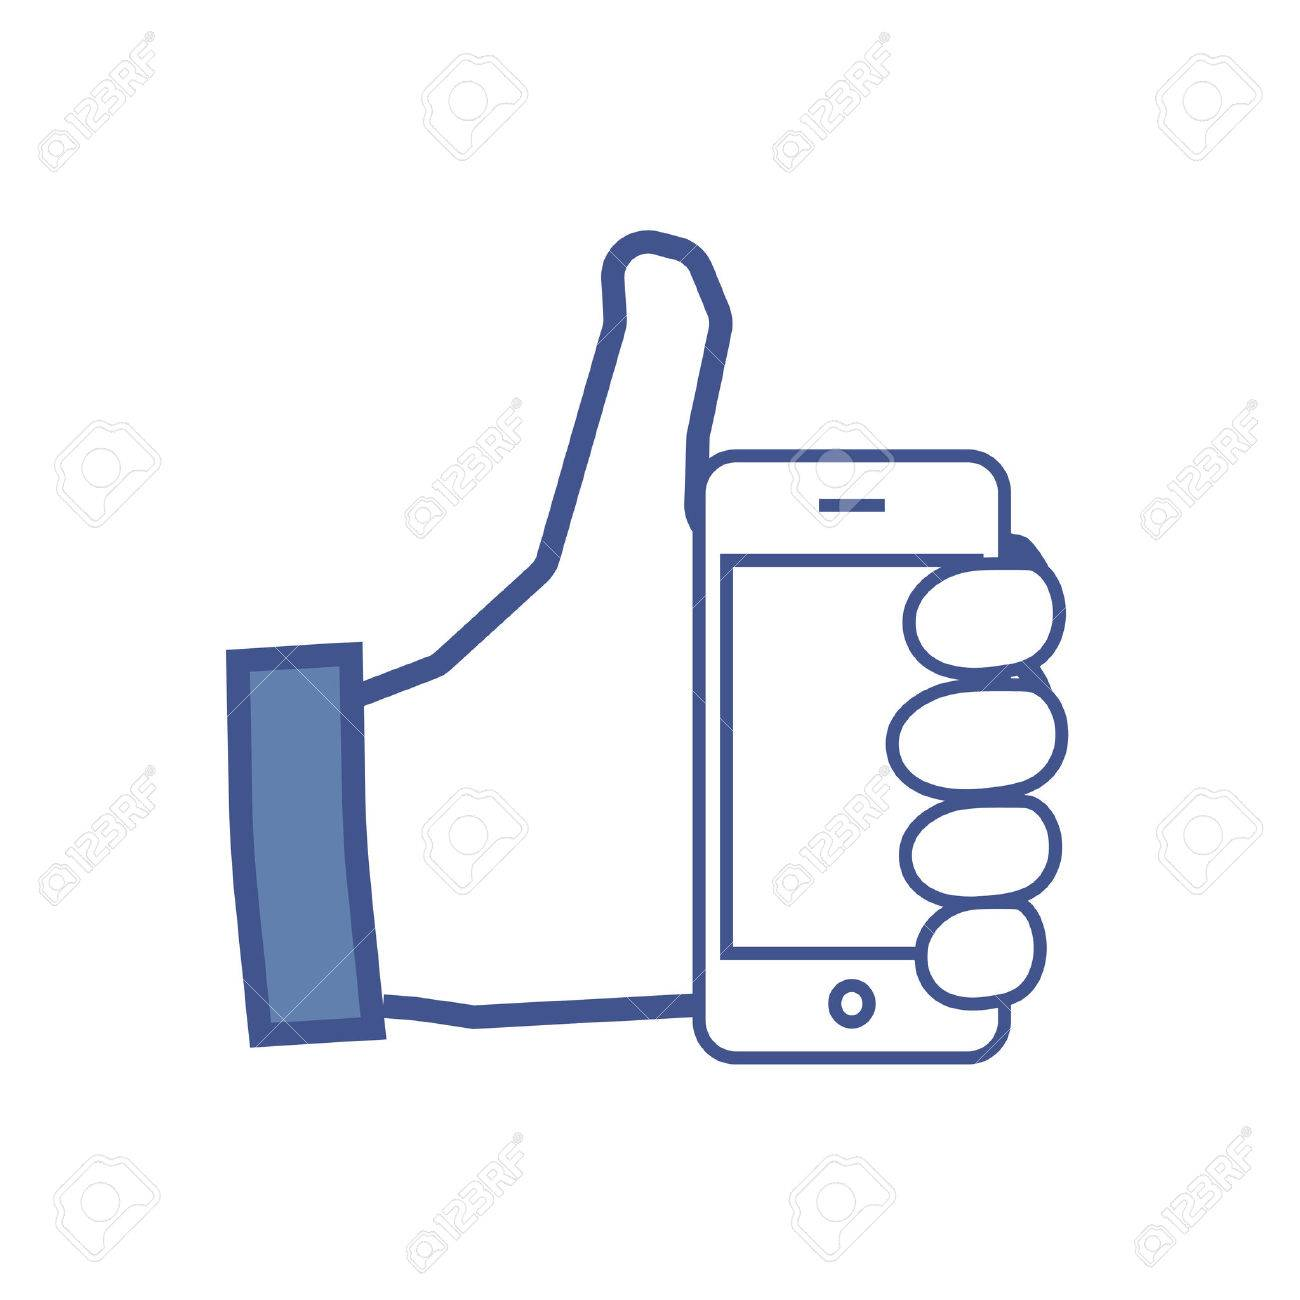 Facebook like flat icon with cell phone - 39809644